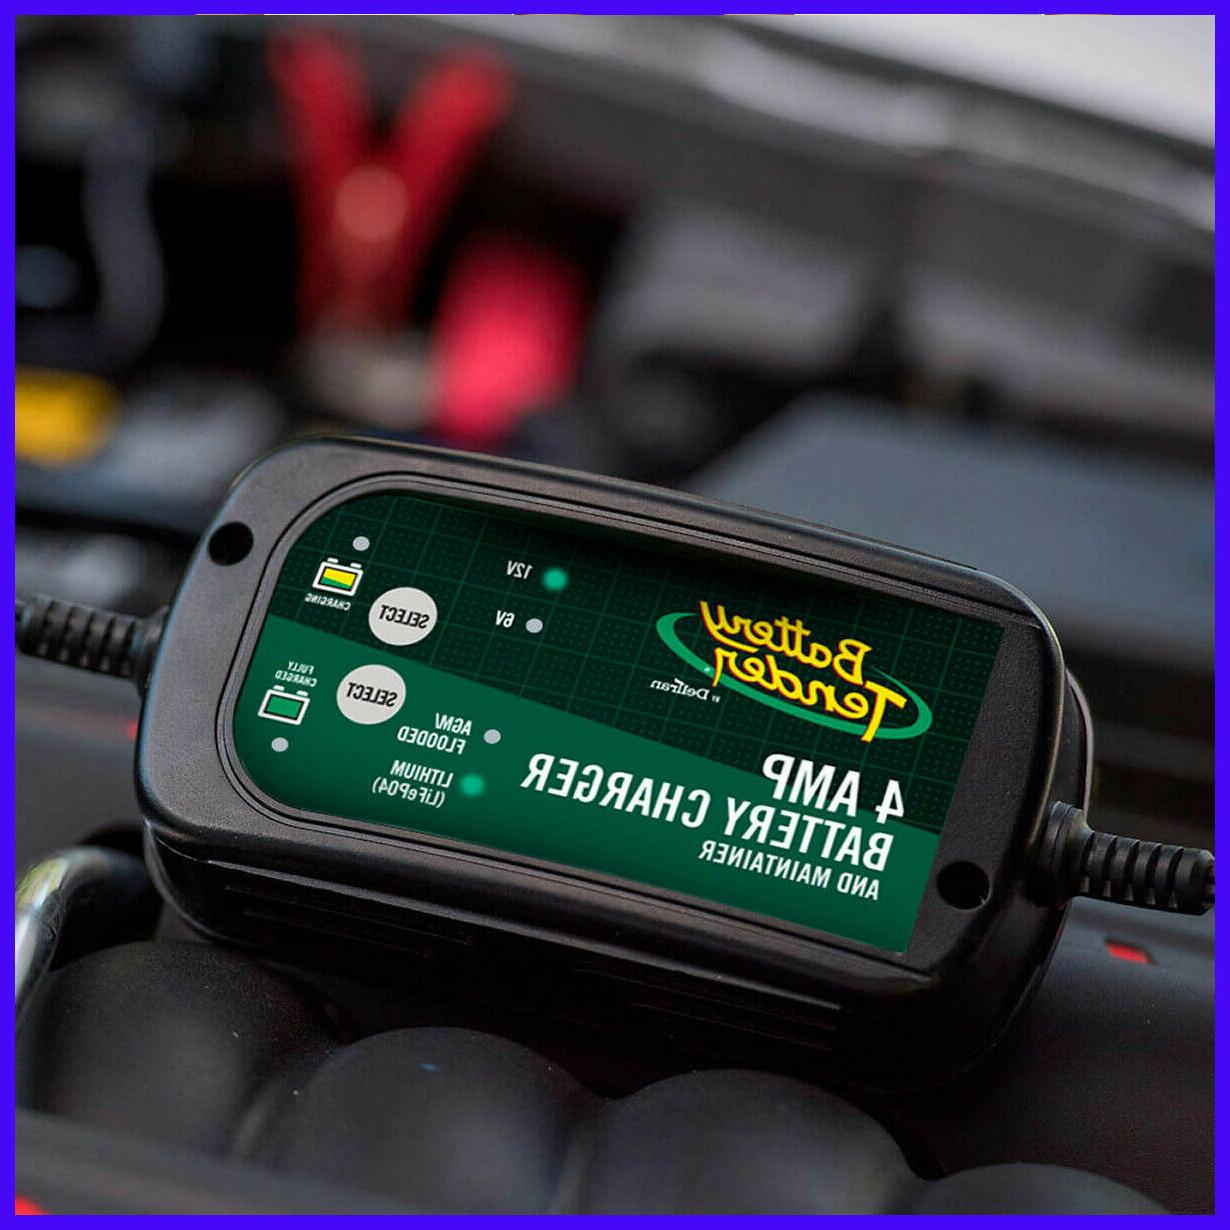 4amp smart battery charger and maintainer